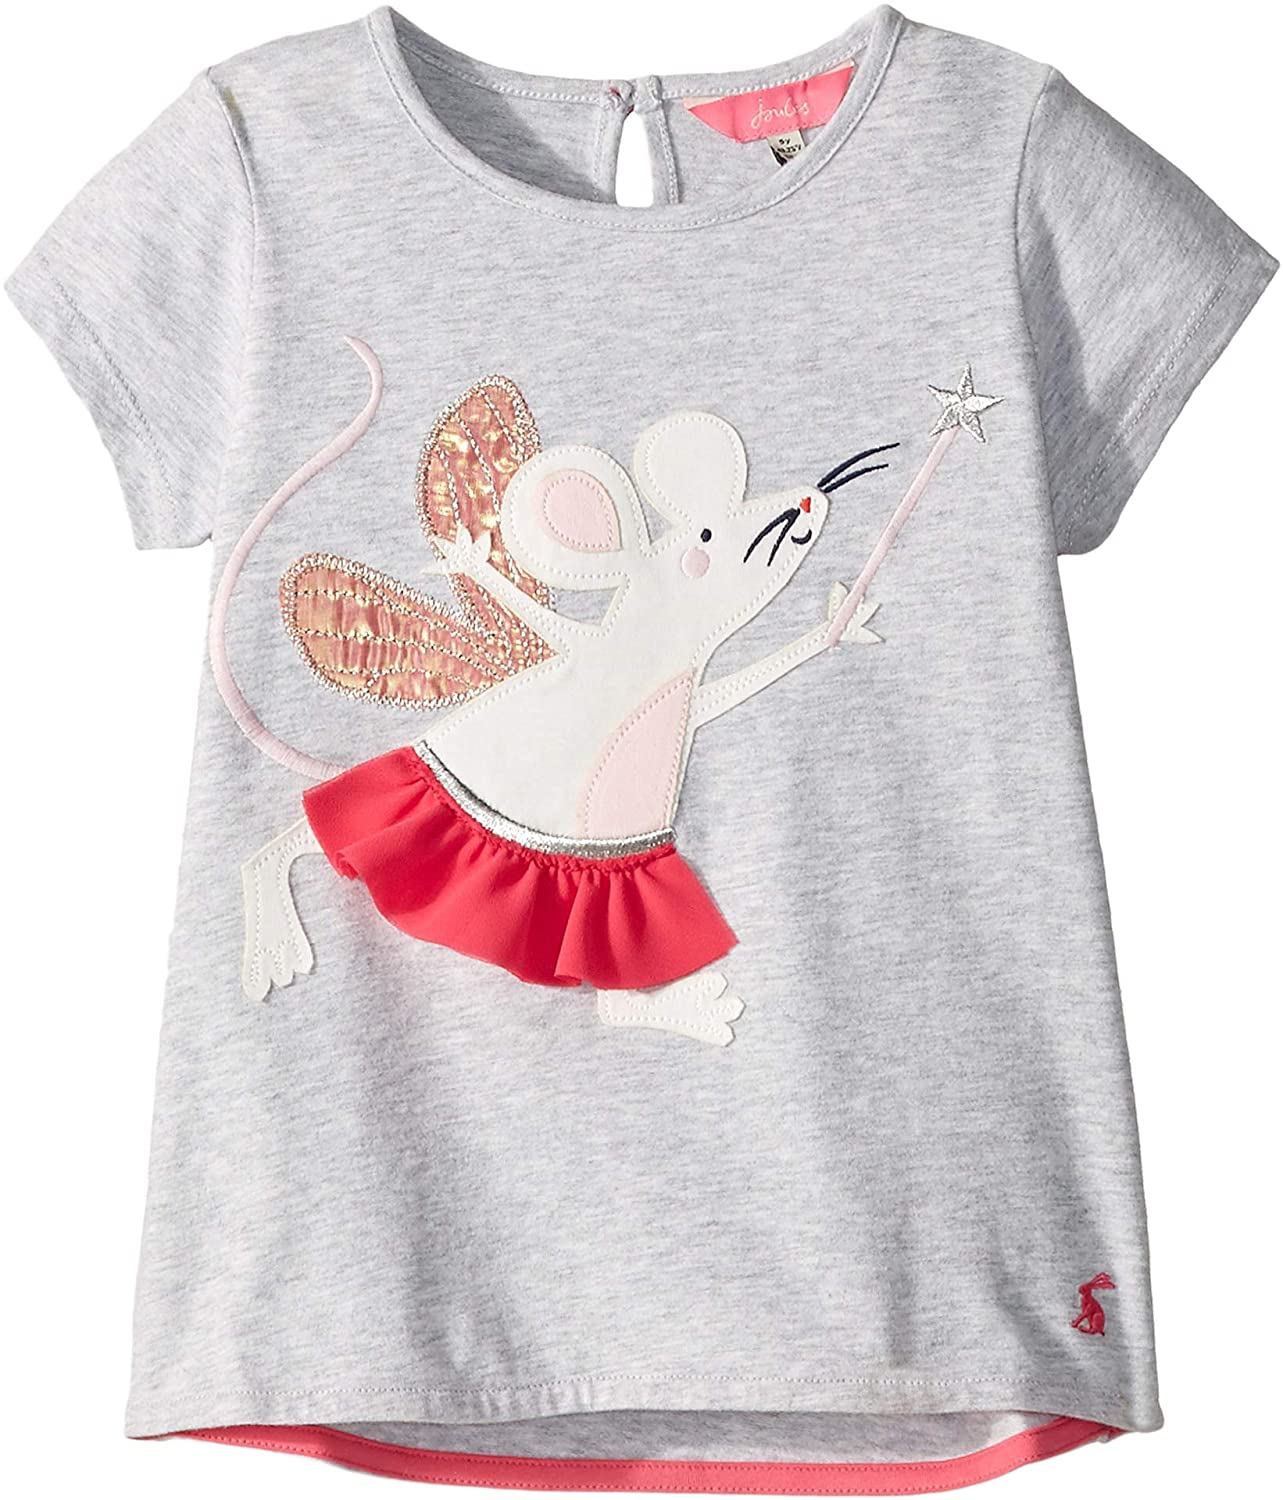 2fb46336f Amazon.com: Joules Kids Baby Girl's Maggie T-Shirt (Toddler/Little Kids):  Clothing